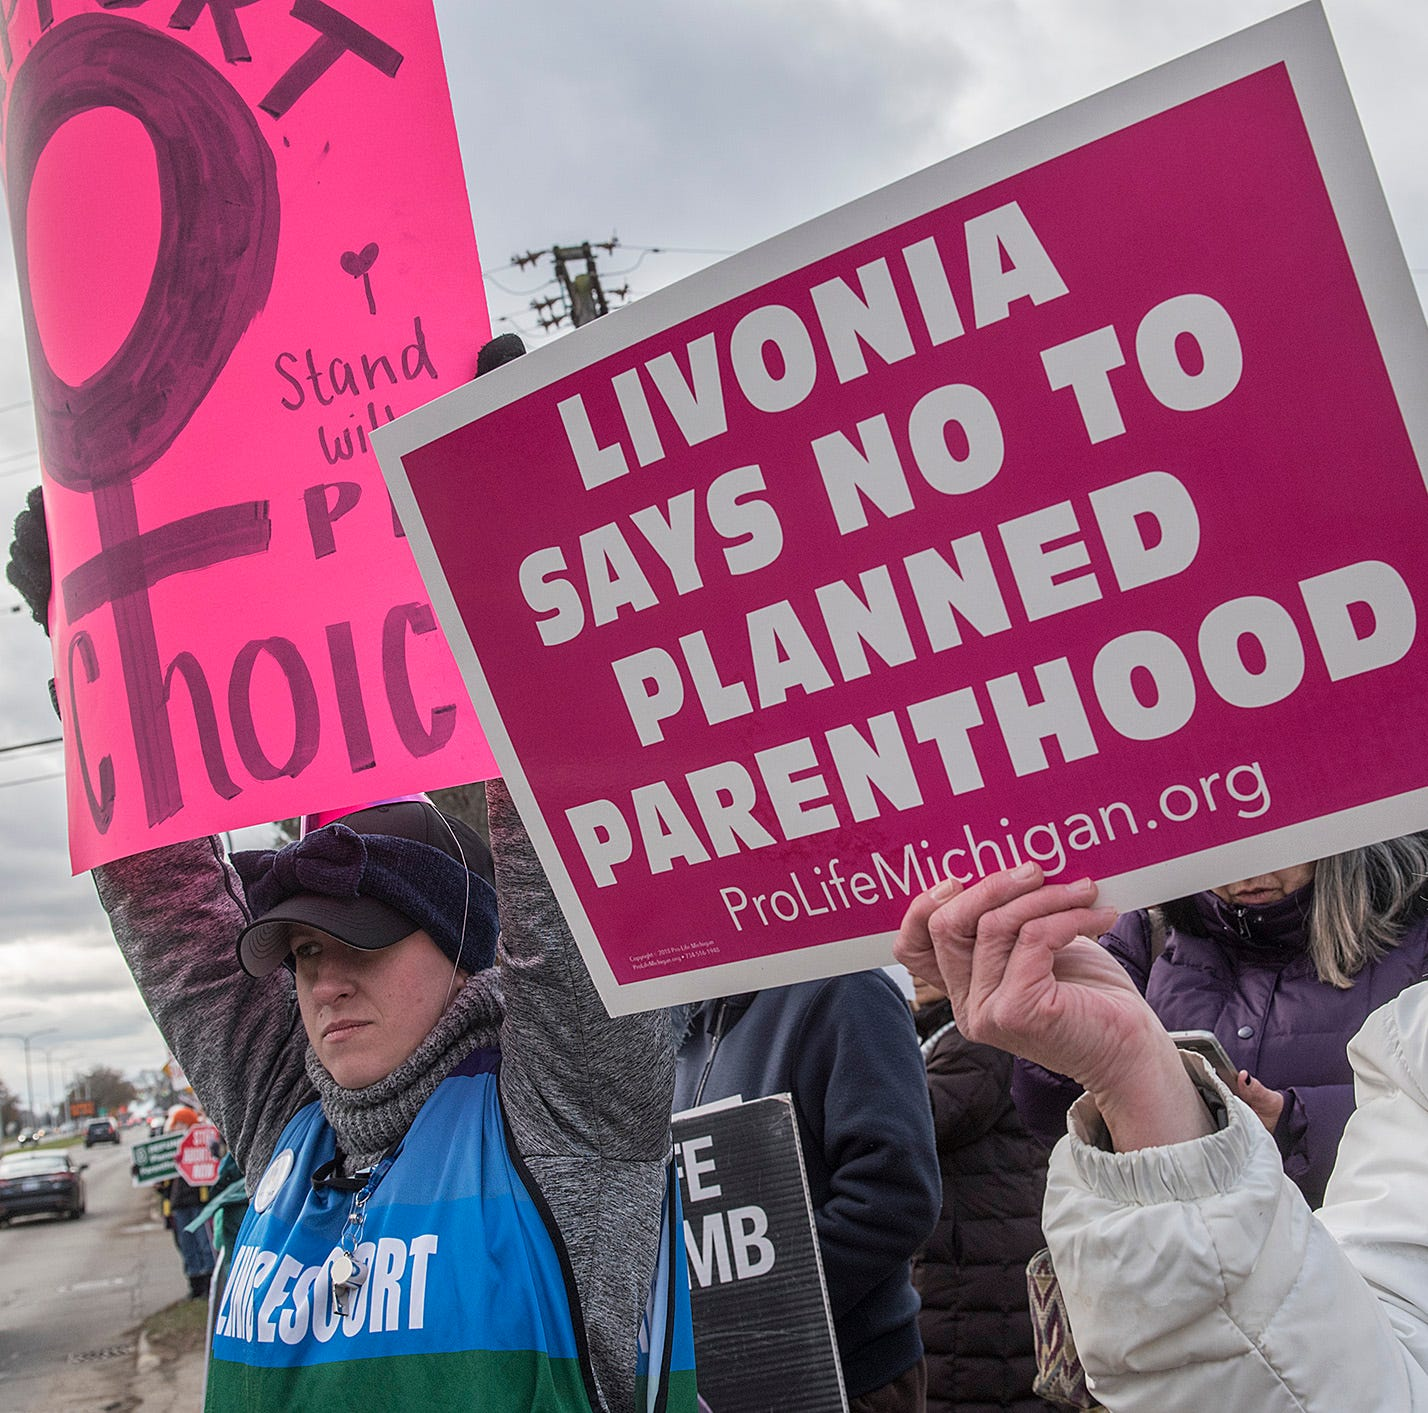 Critics, supporters take part in latest Planned Parenthood protest